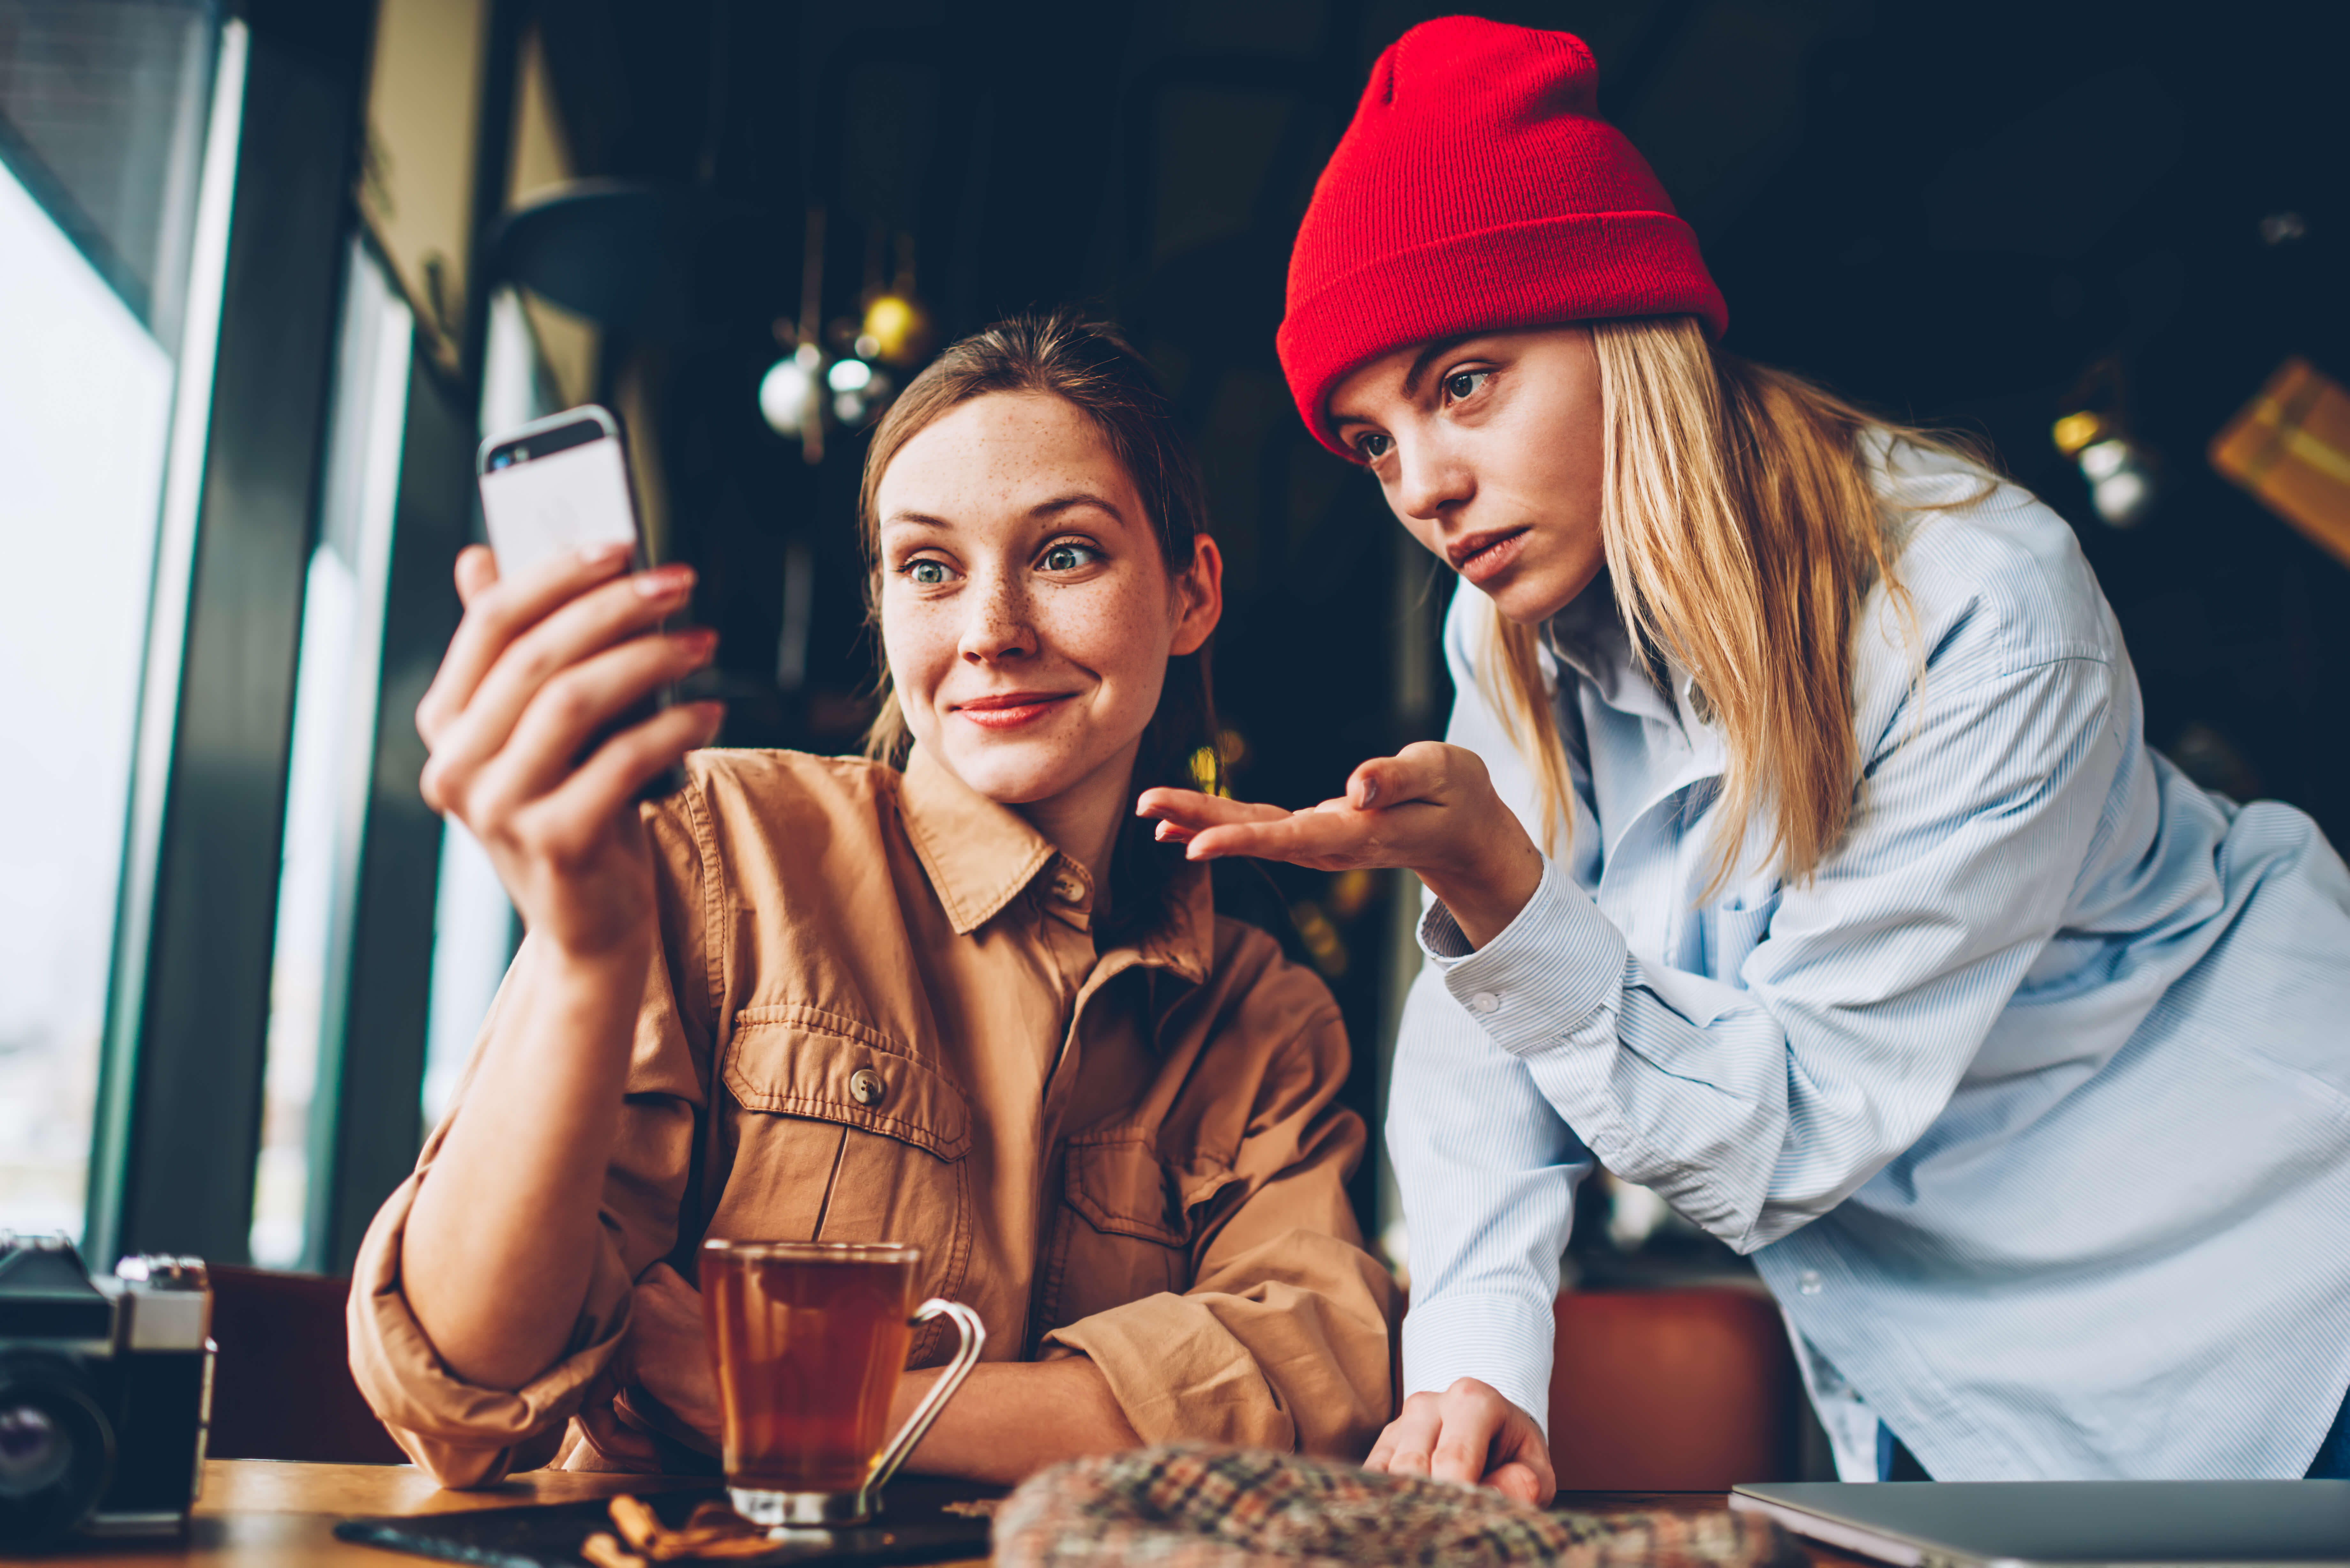 Livestreaming is a latest trend that is part of broader boom in the Asian e-commerce space. Source: Shutterstock